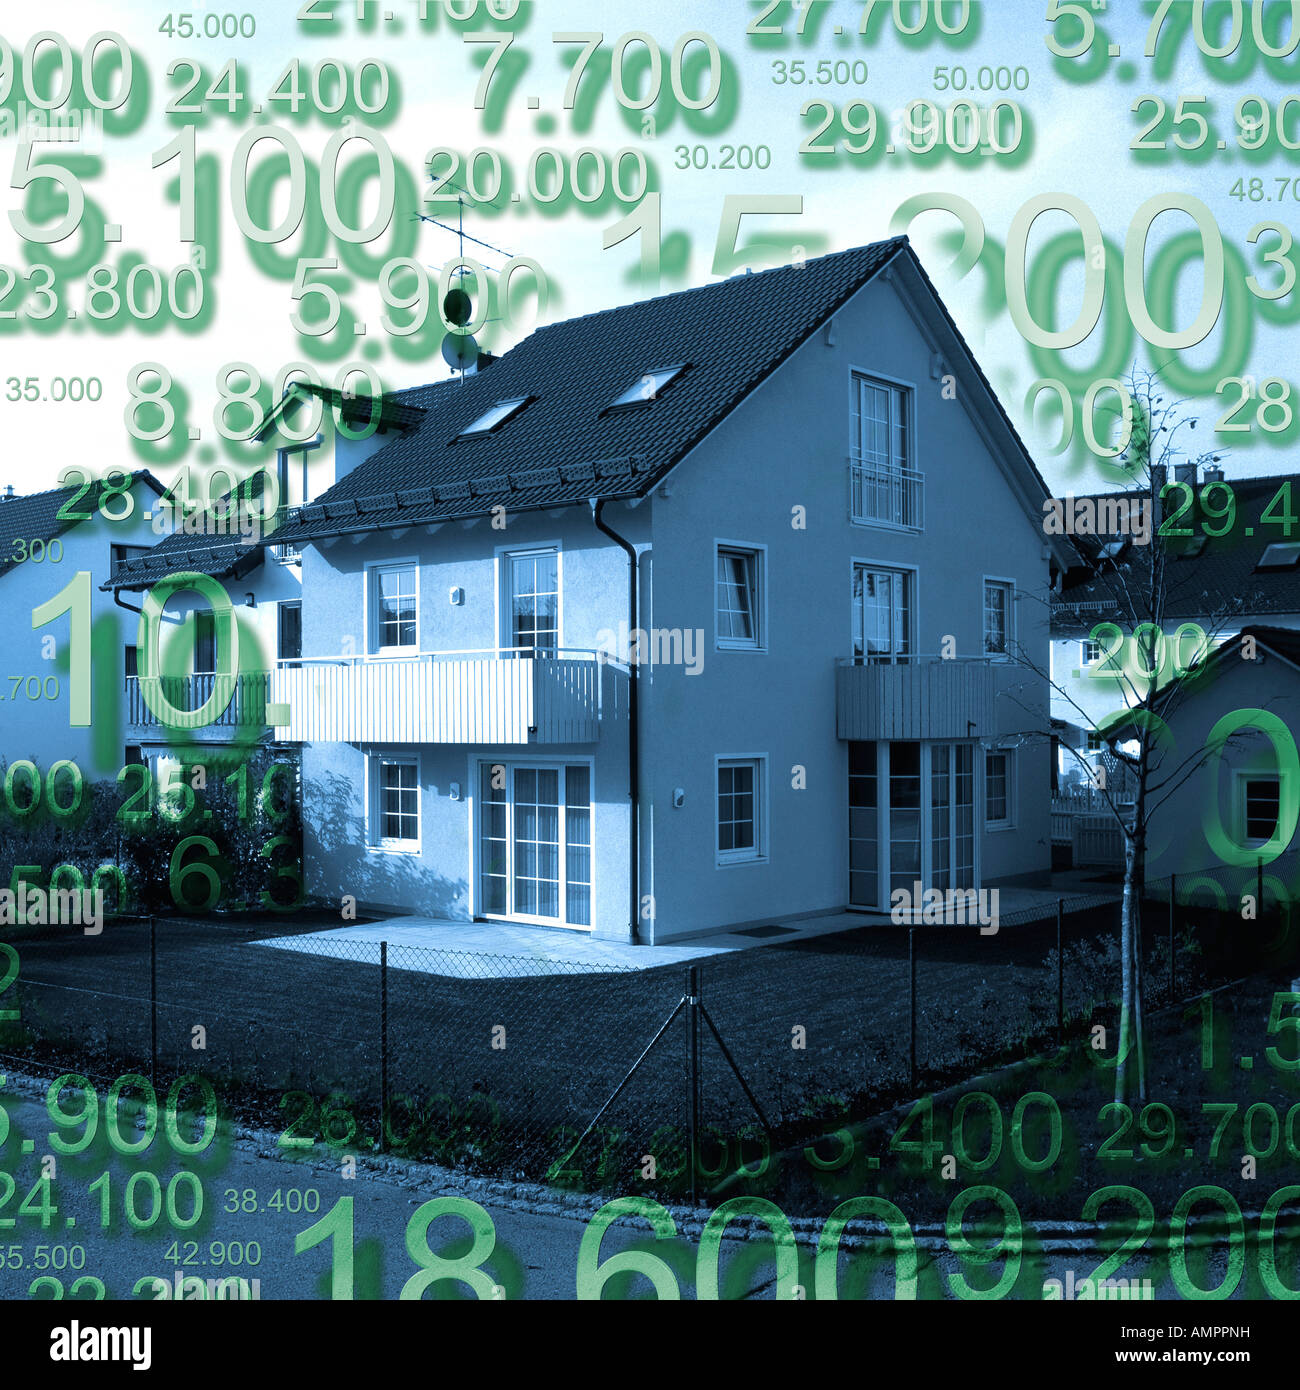 Building costs Stock Photo